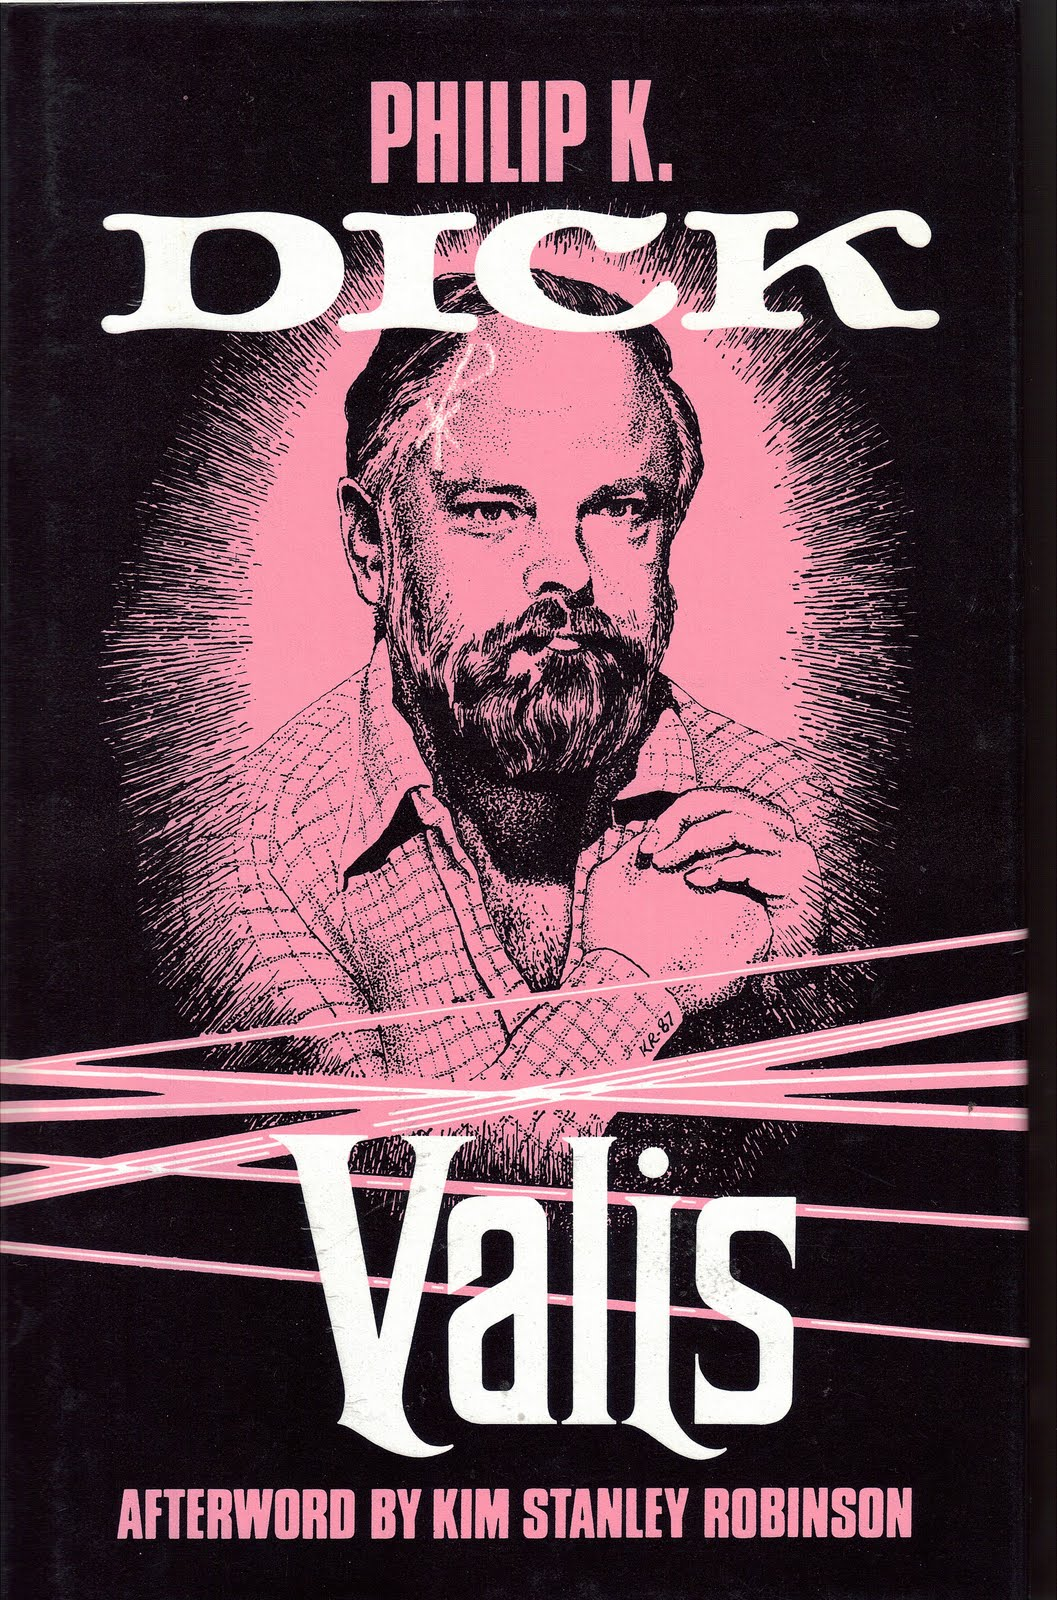 a literary analysis of valis by philip k dick Valis by philip k dick philip k dick got there first terry gilliam my literary hero fay weldon one of the most original practitioners writing any.